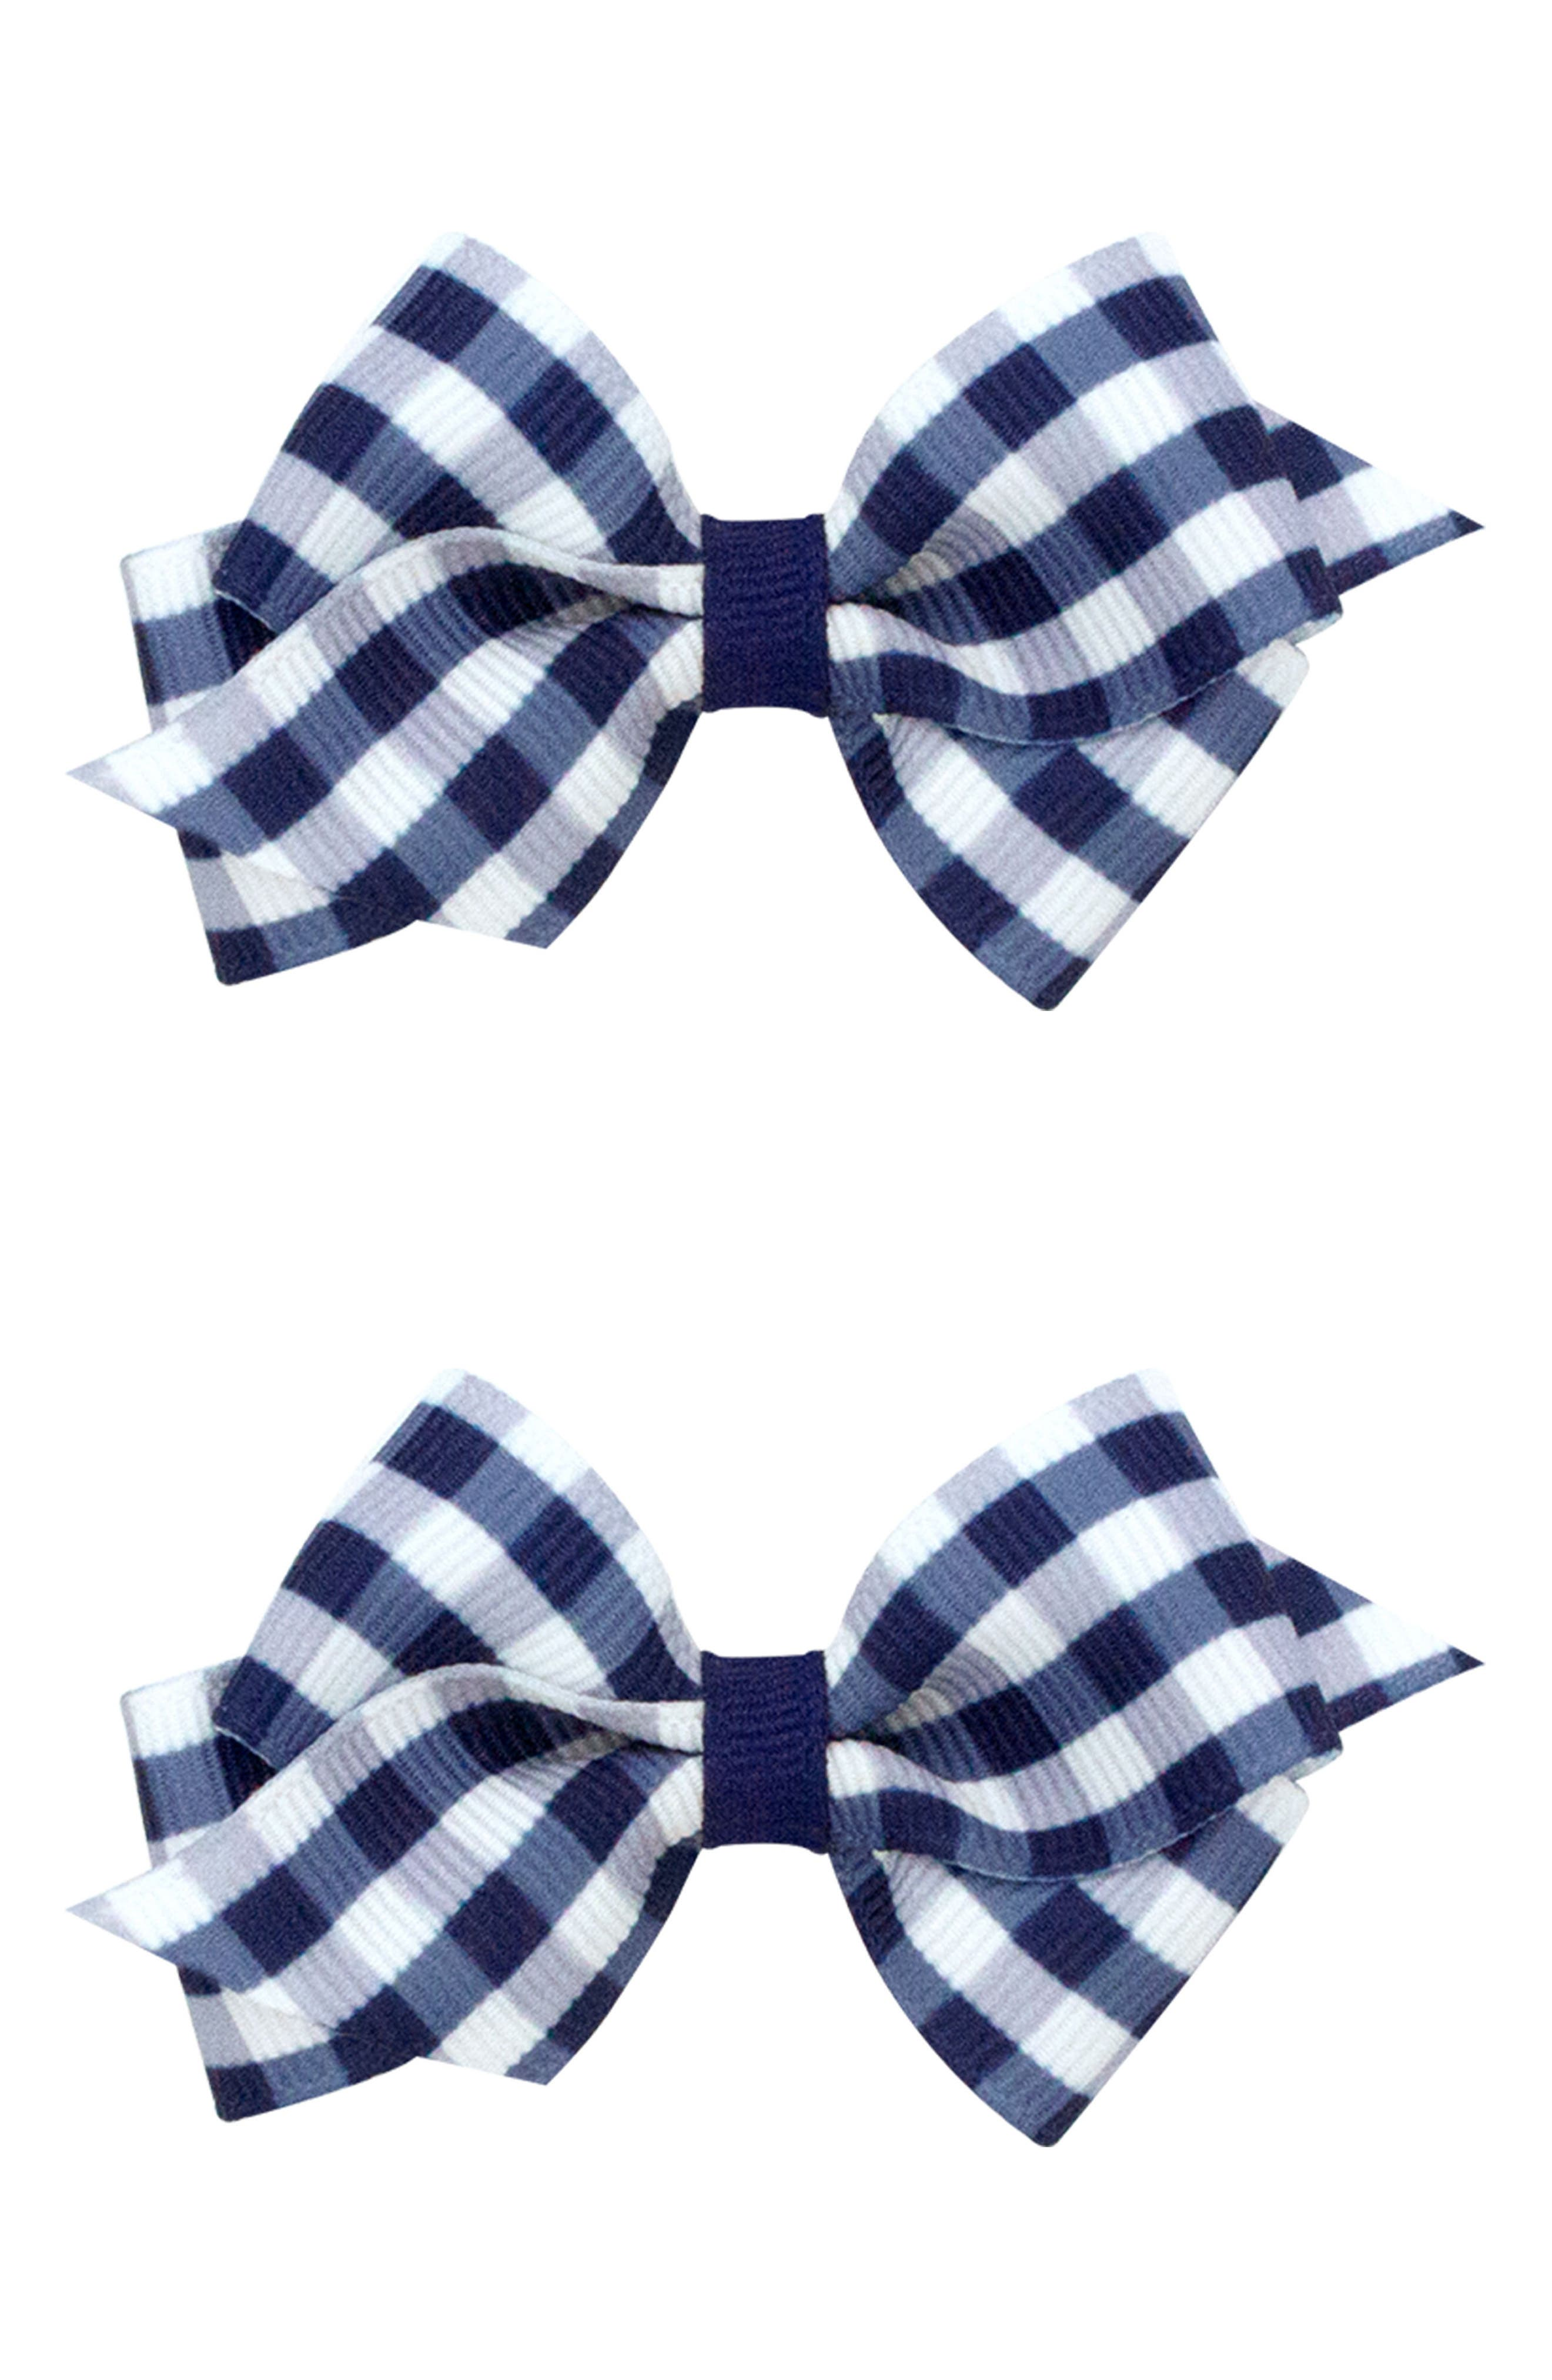 2-Pack Gingham Bow Clips,                             Main thumbnail 1, color,                             NAVY